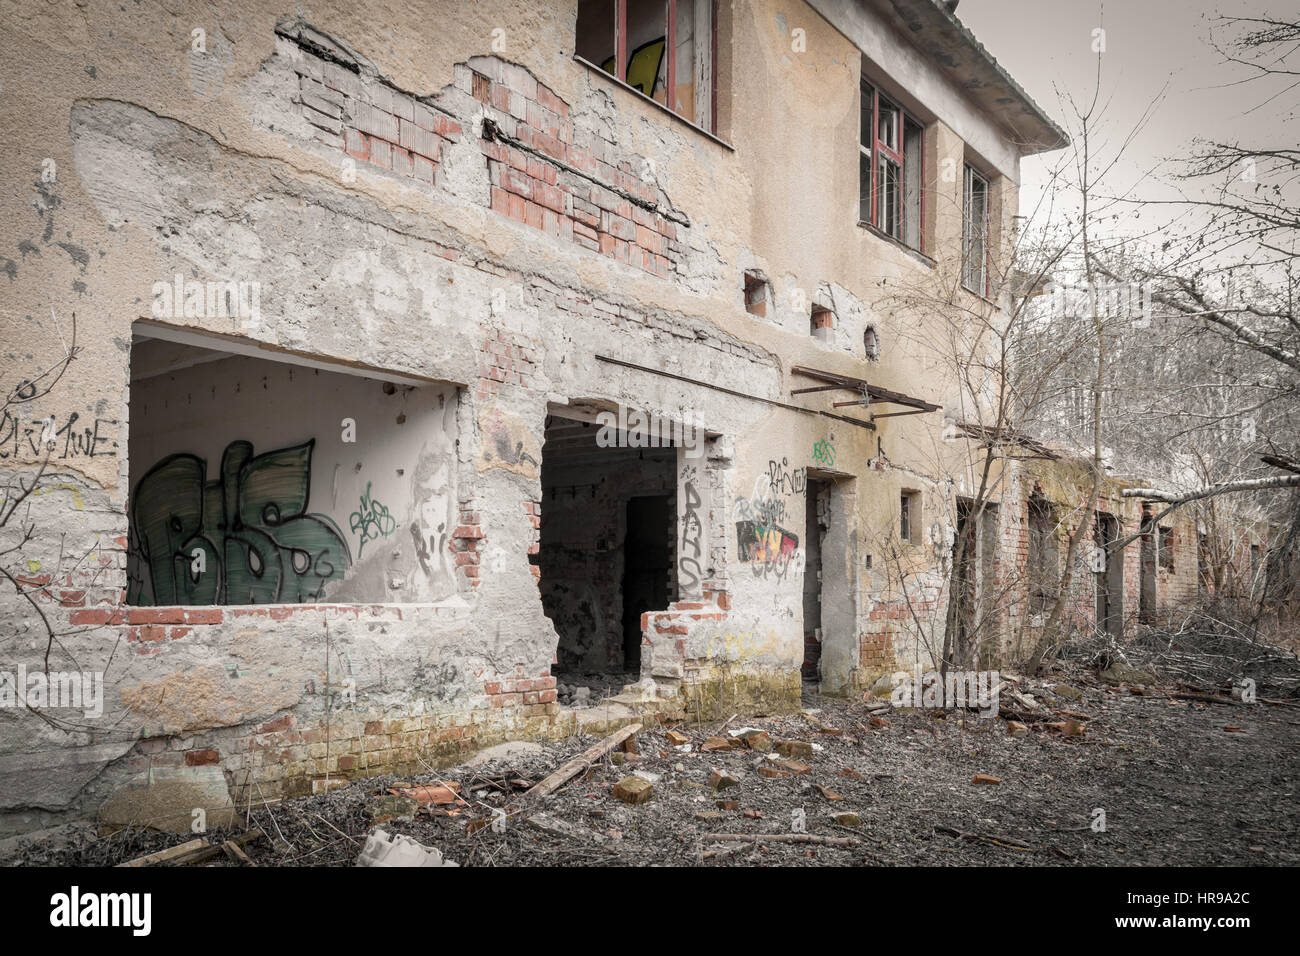 creepy abandoned house - Stock Image